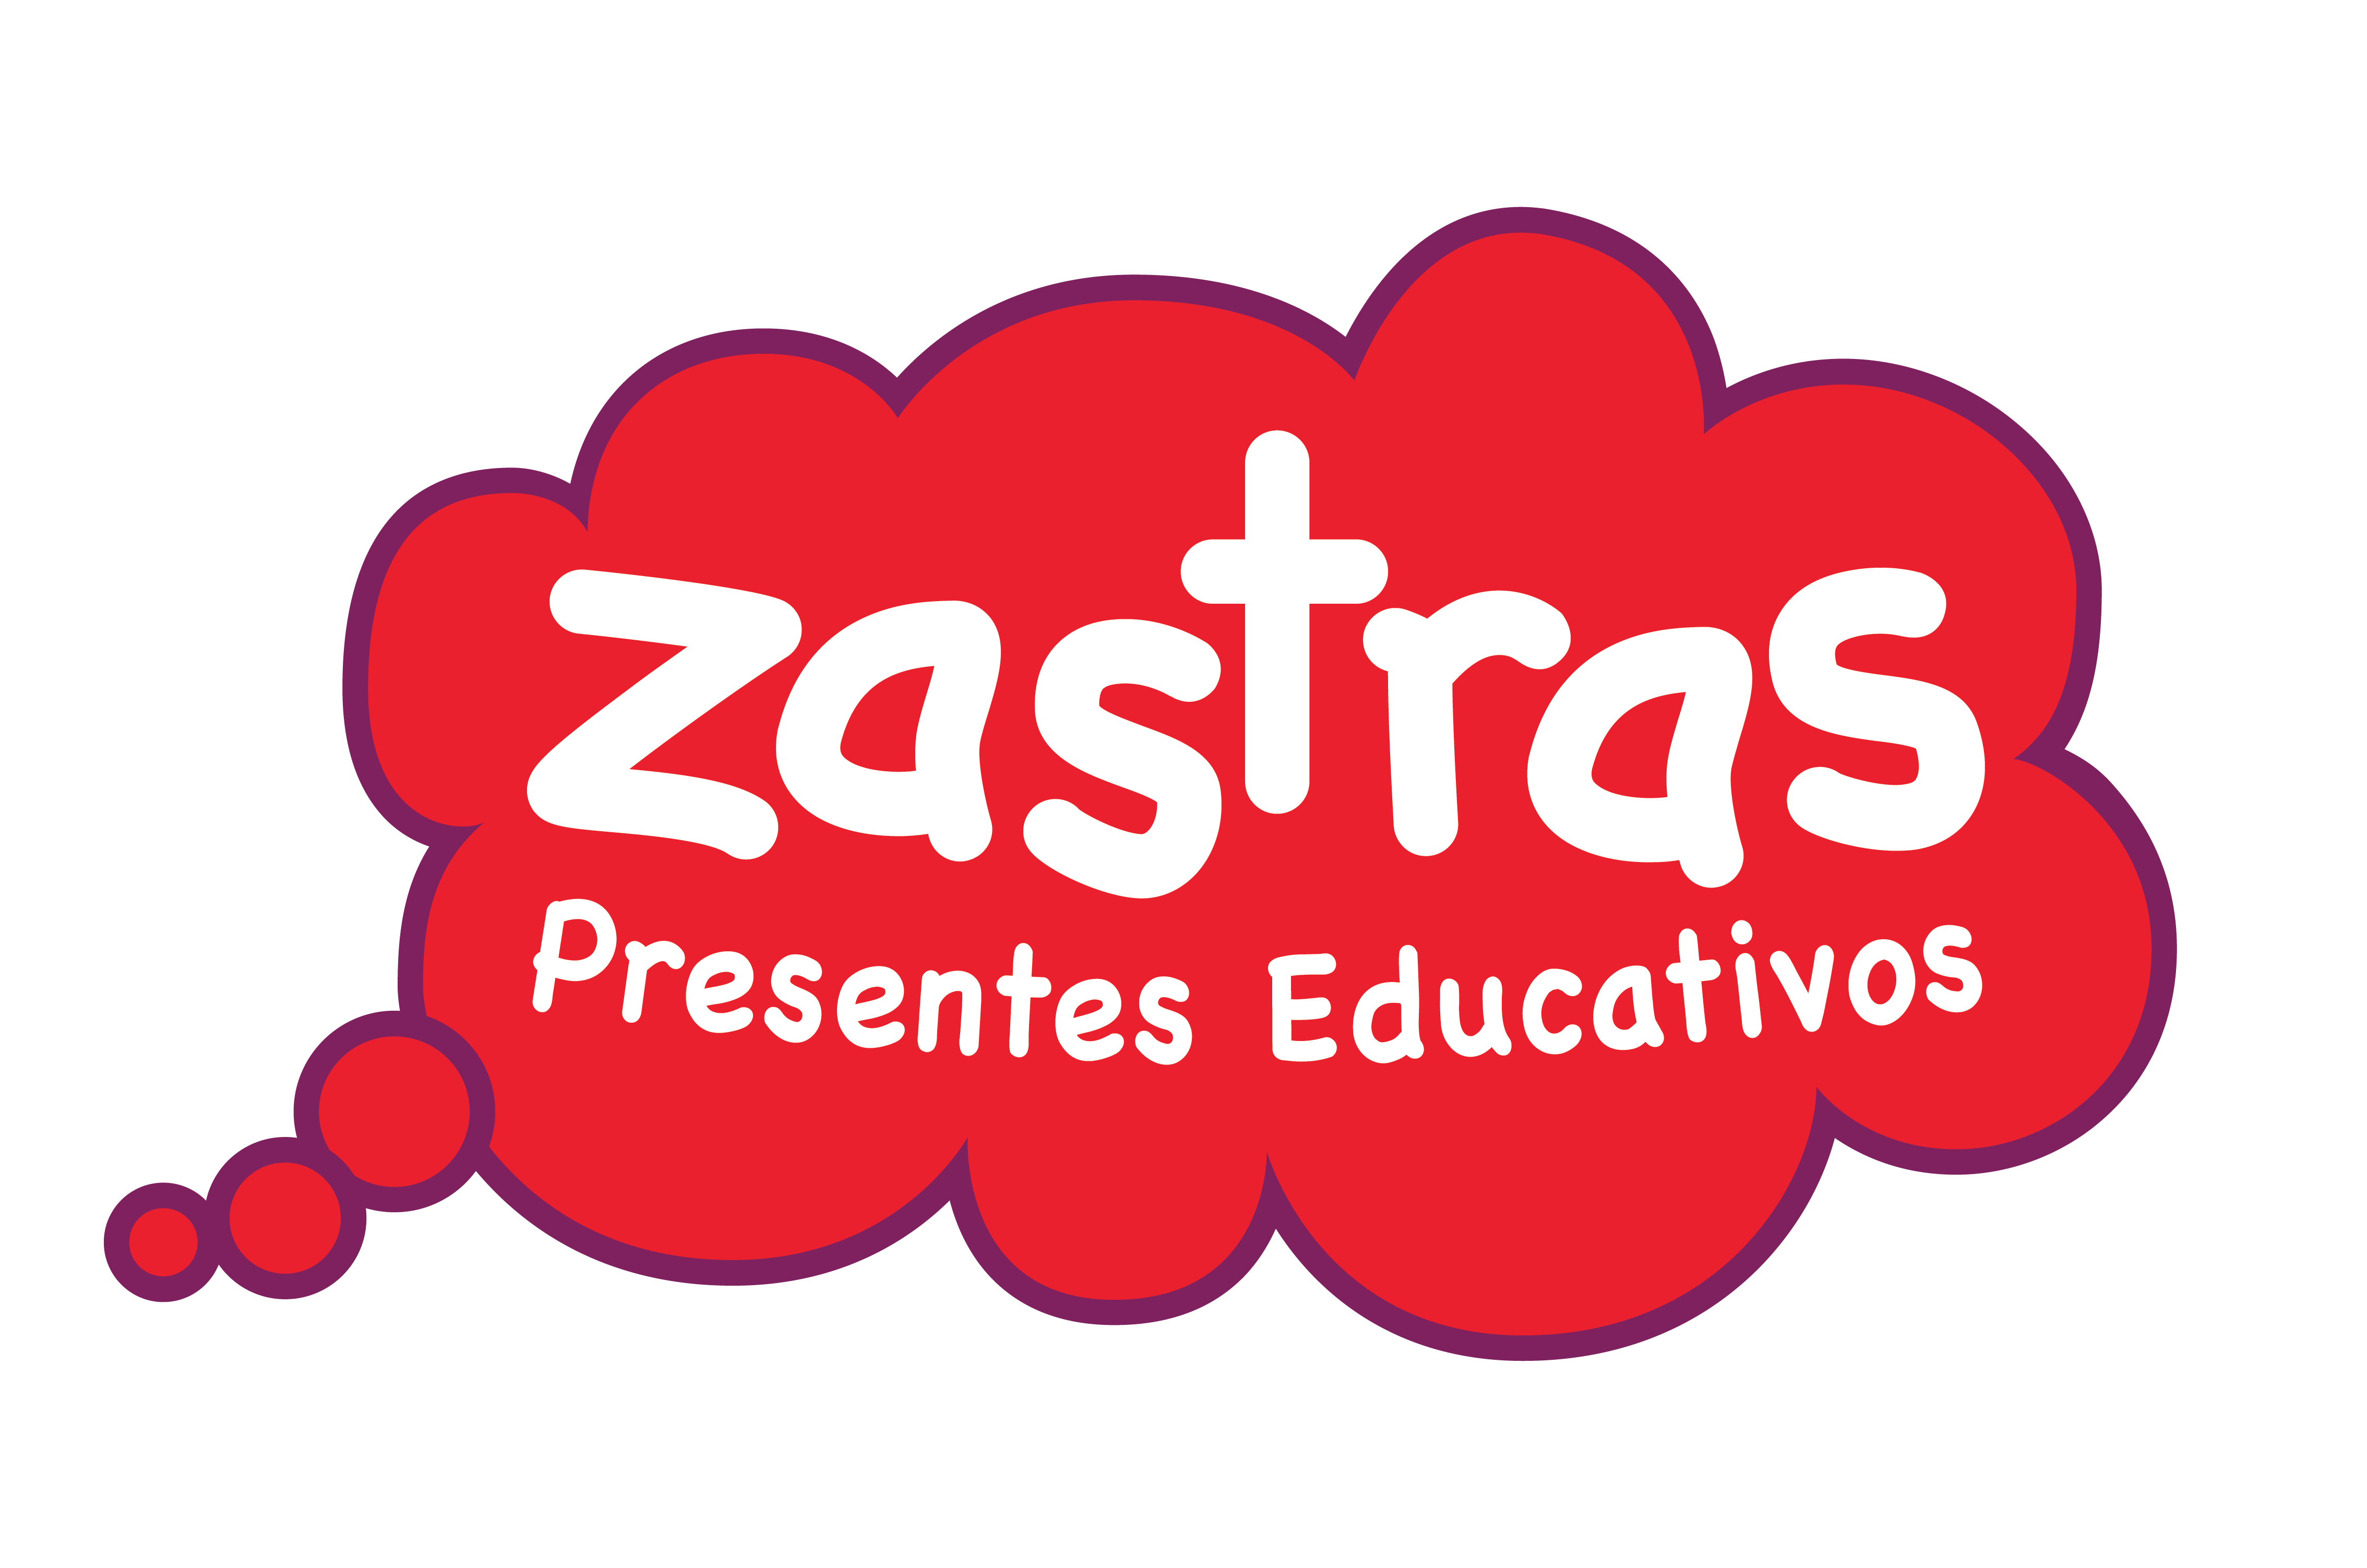 Zastras Presentes Educativos